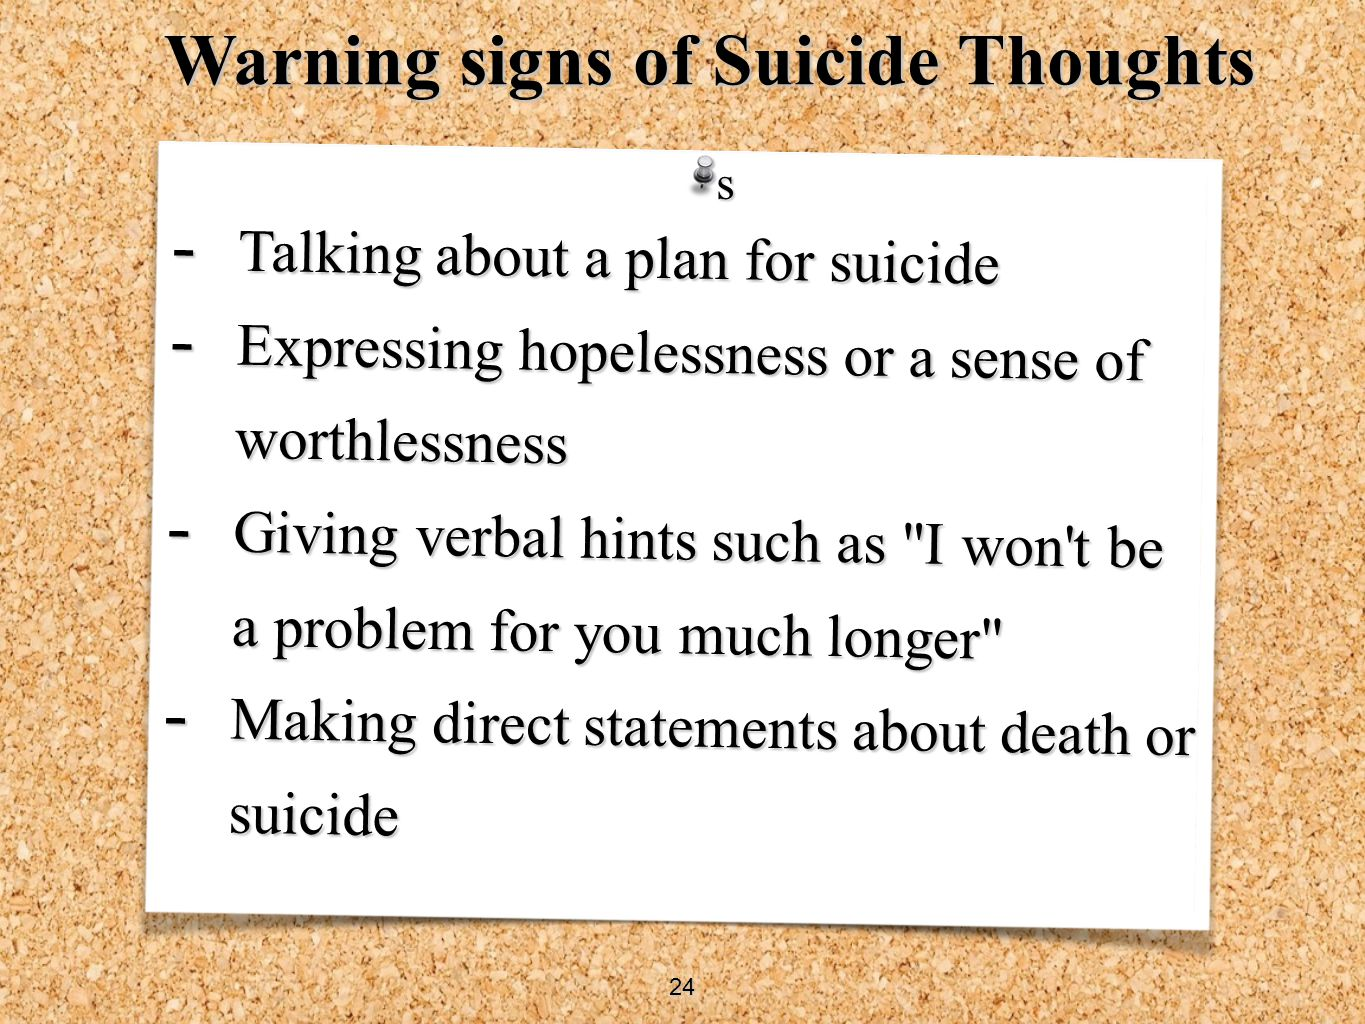 - Talking about a plan for suicide - Expressing hopelessness or a sense of worthlessness - Giving verbal hints such as